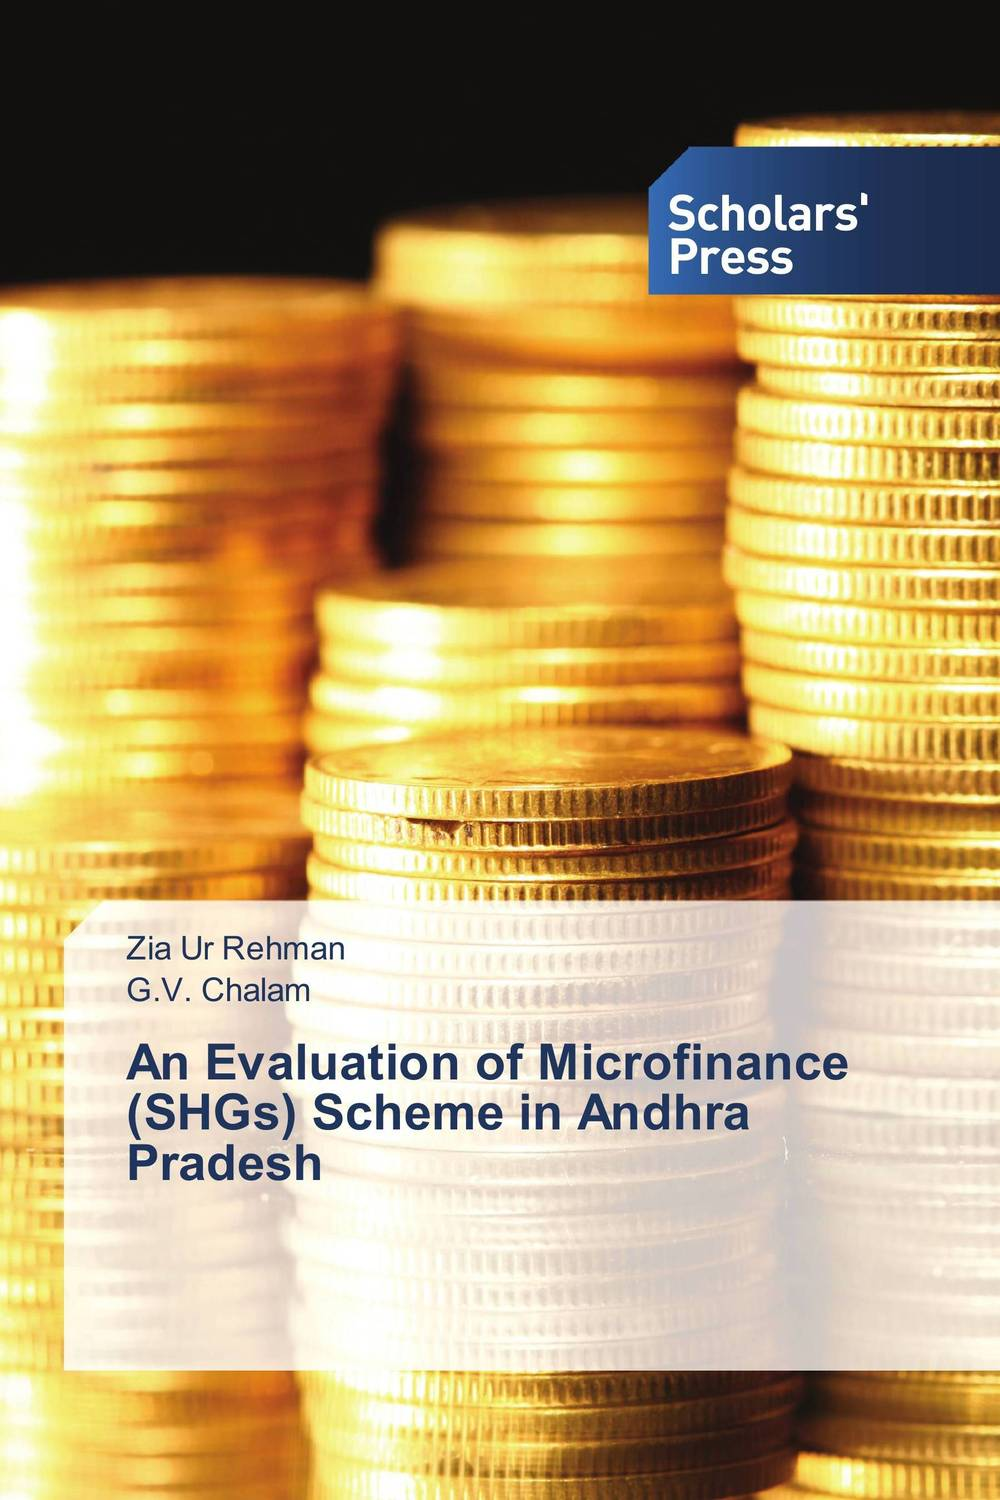 An Evaluation of Microfinance (SHGs) Scheme in Andhra Pradesh the role of evaluation as a mechanism for advancing principal practice